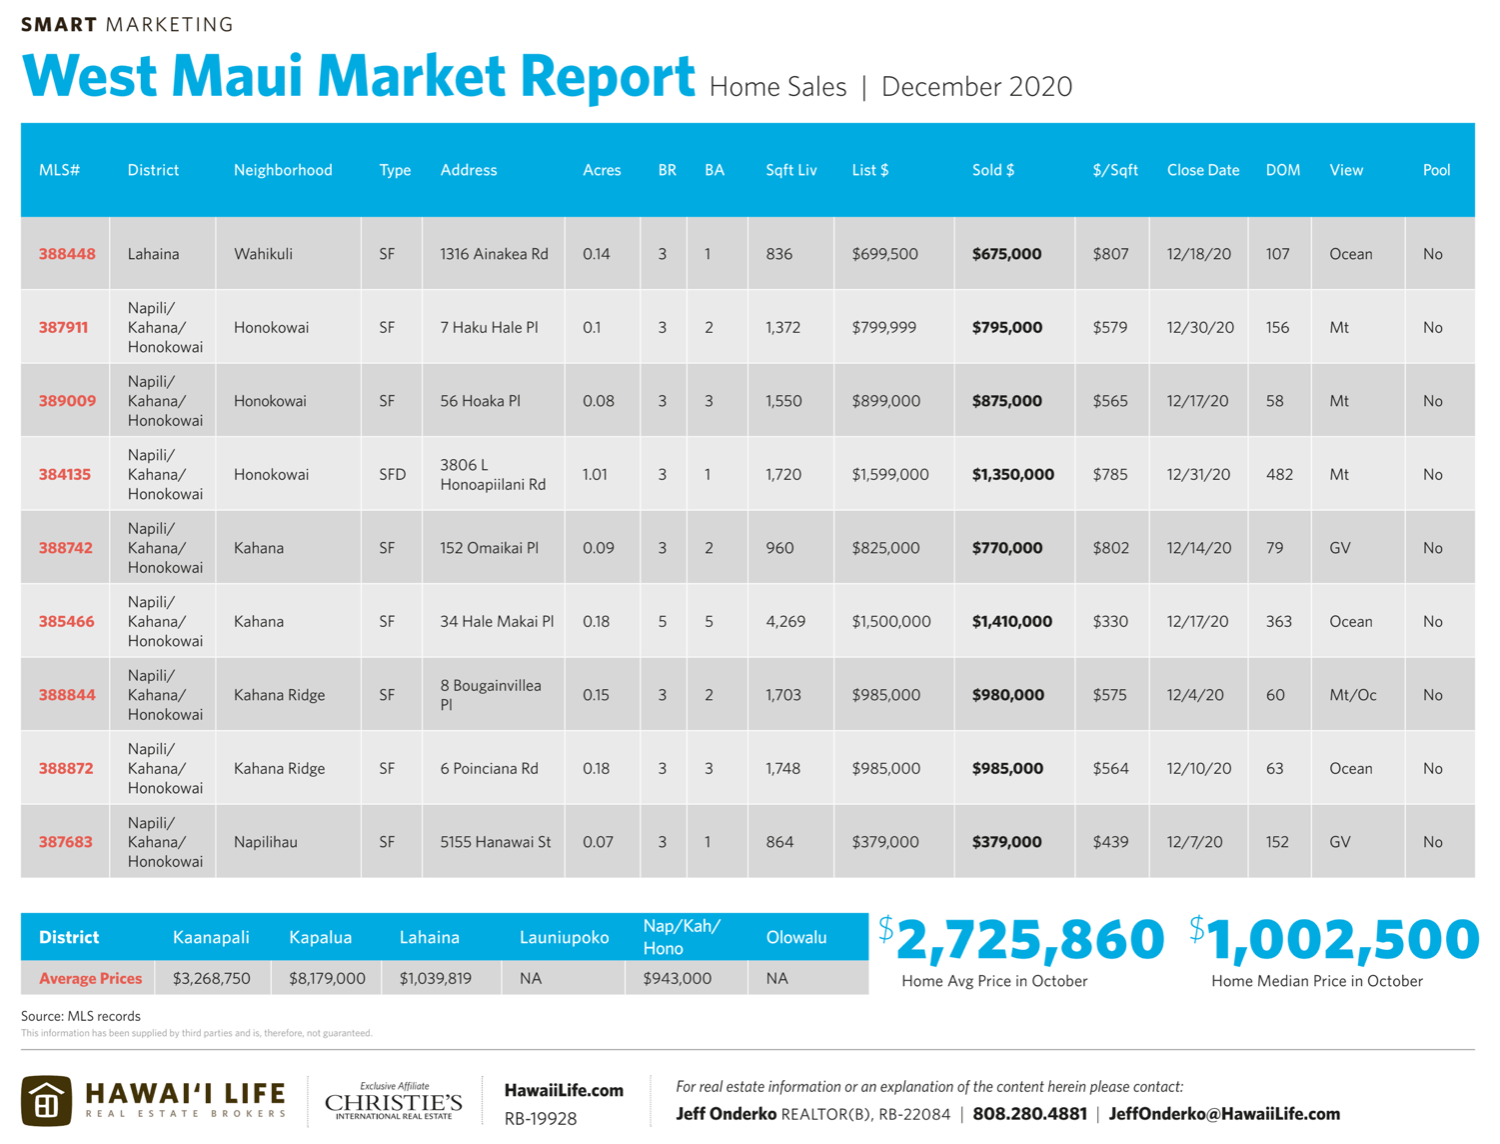 west maui market report home sales